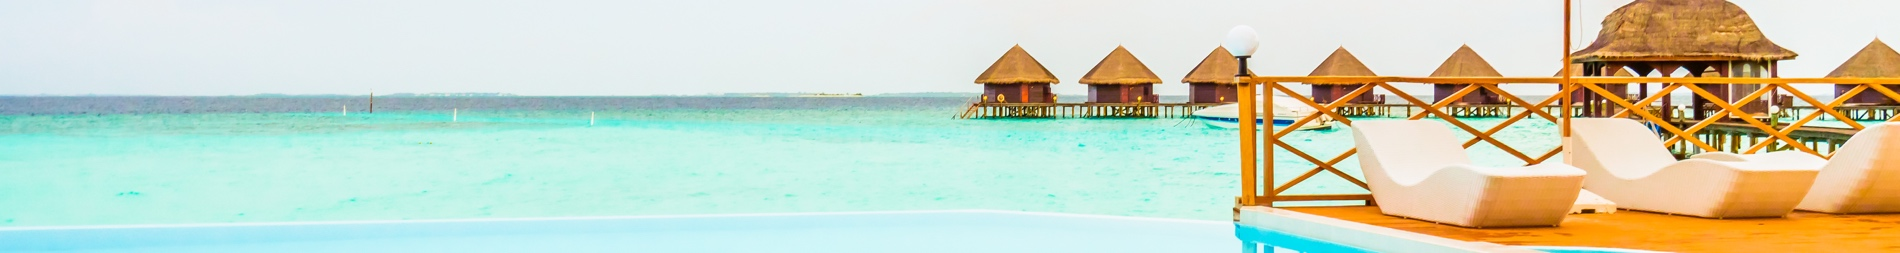 Maldives pool